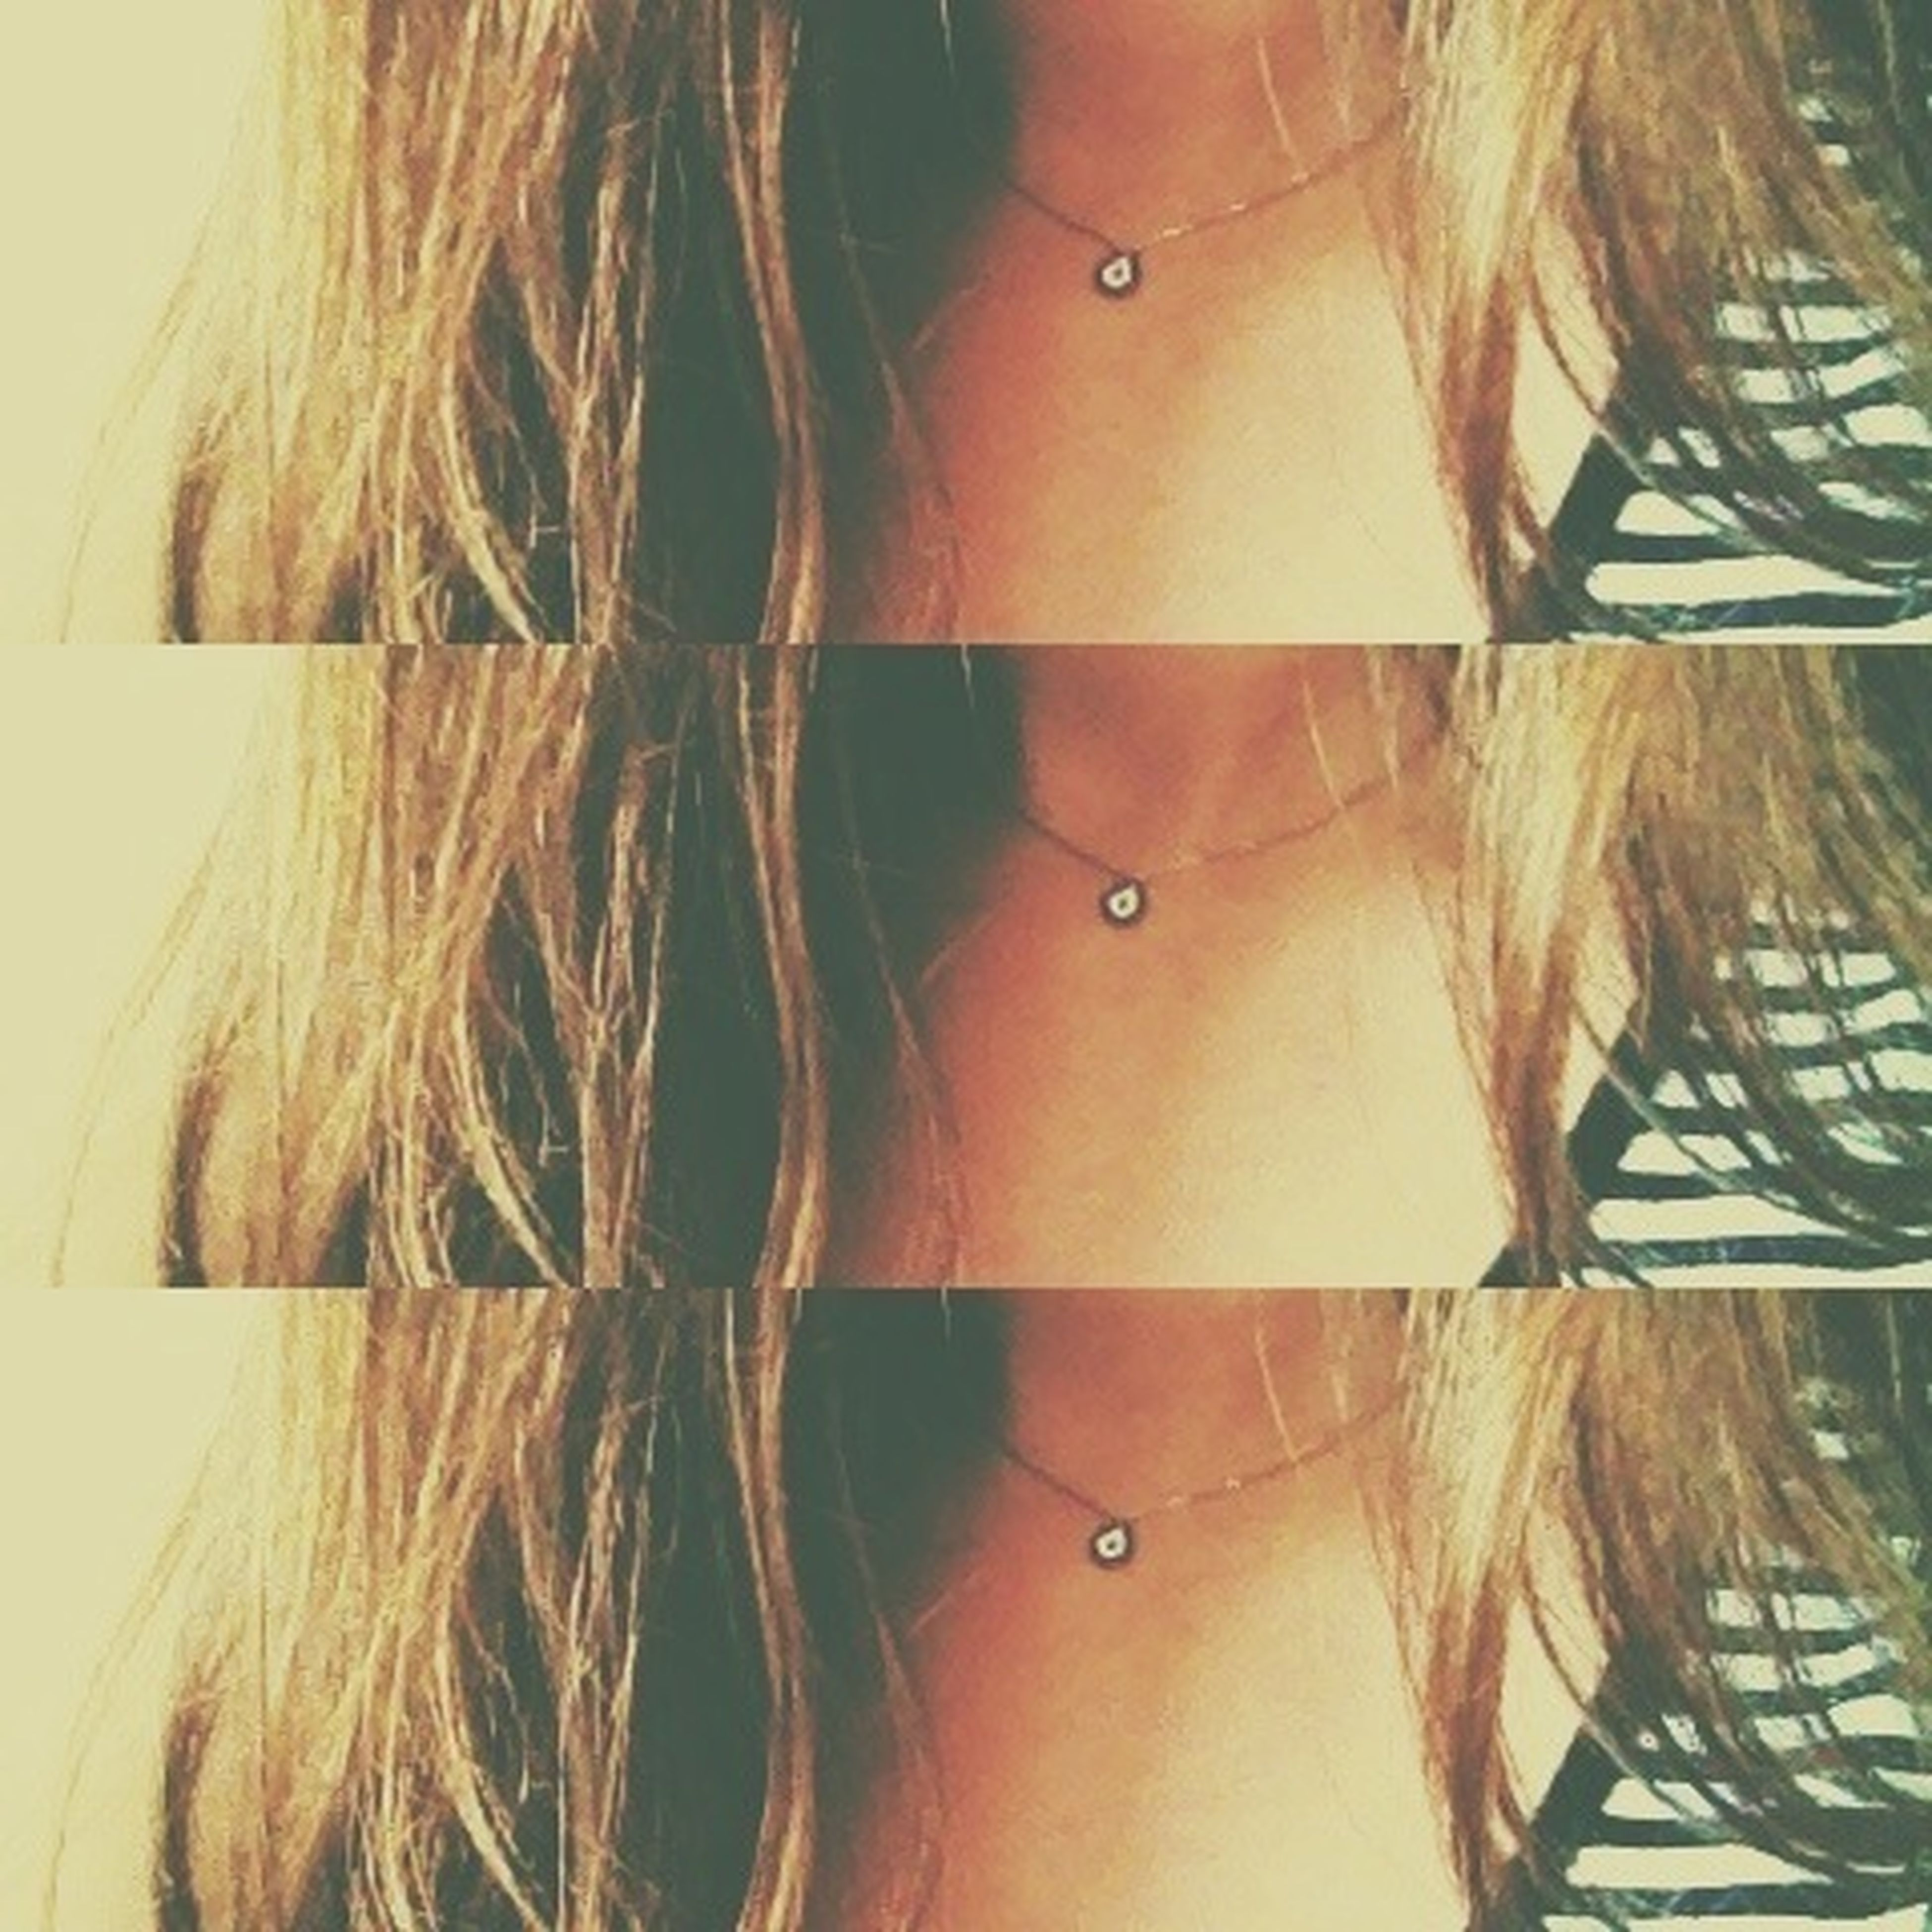 Necklace That's Me Long Hair, Don't Care. 😚